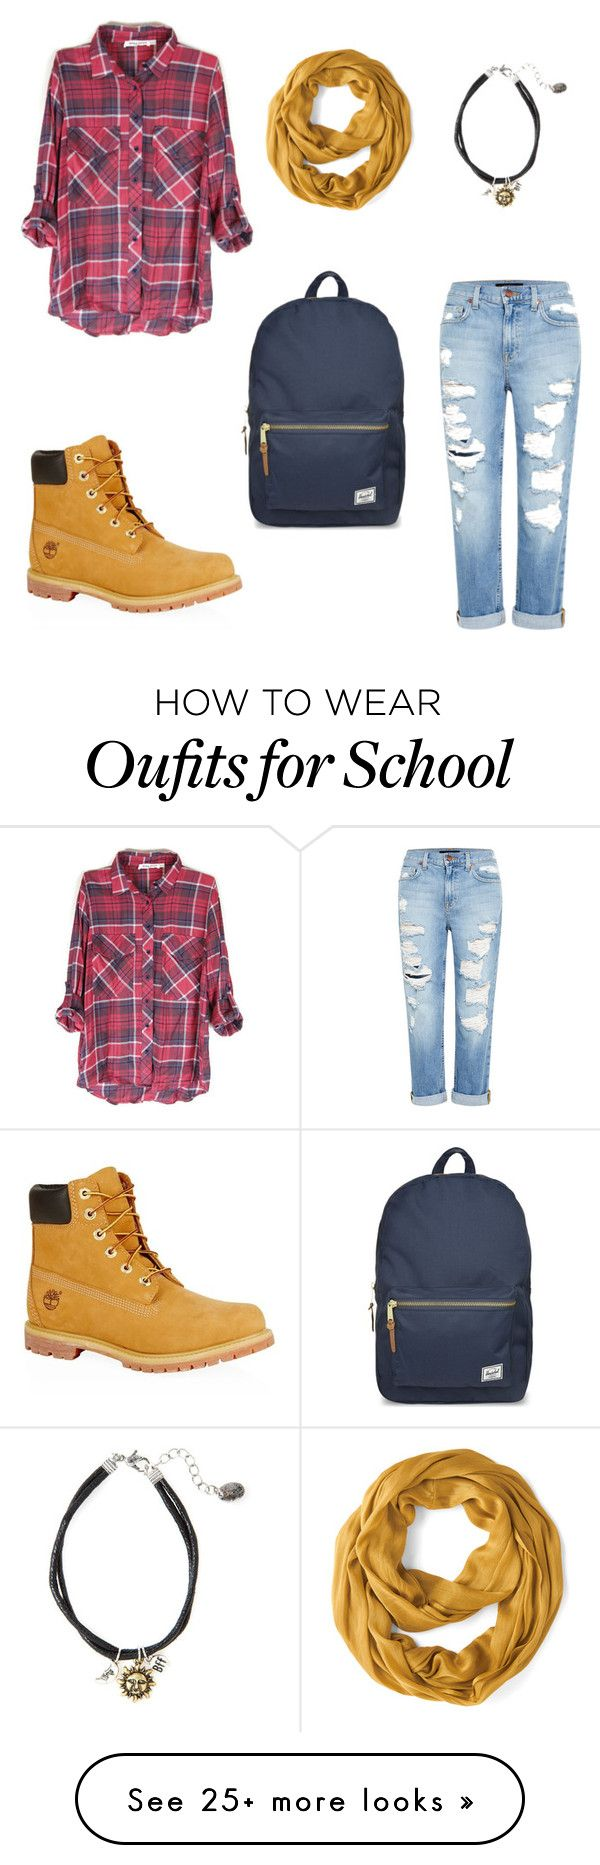 """ Fall school outfit "" by thearctic on Polyvore featuring Genetic Denim, Timberland and Herschel Supply Co."